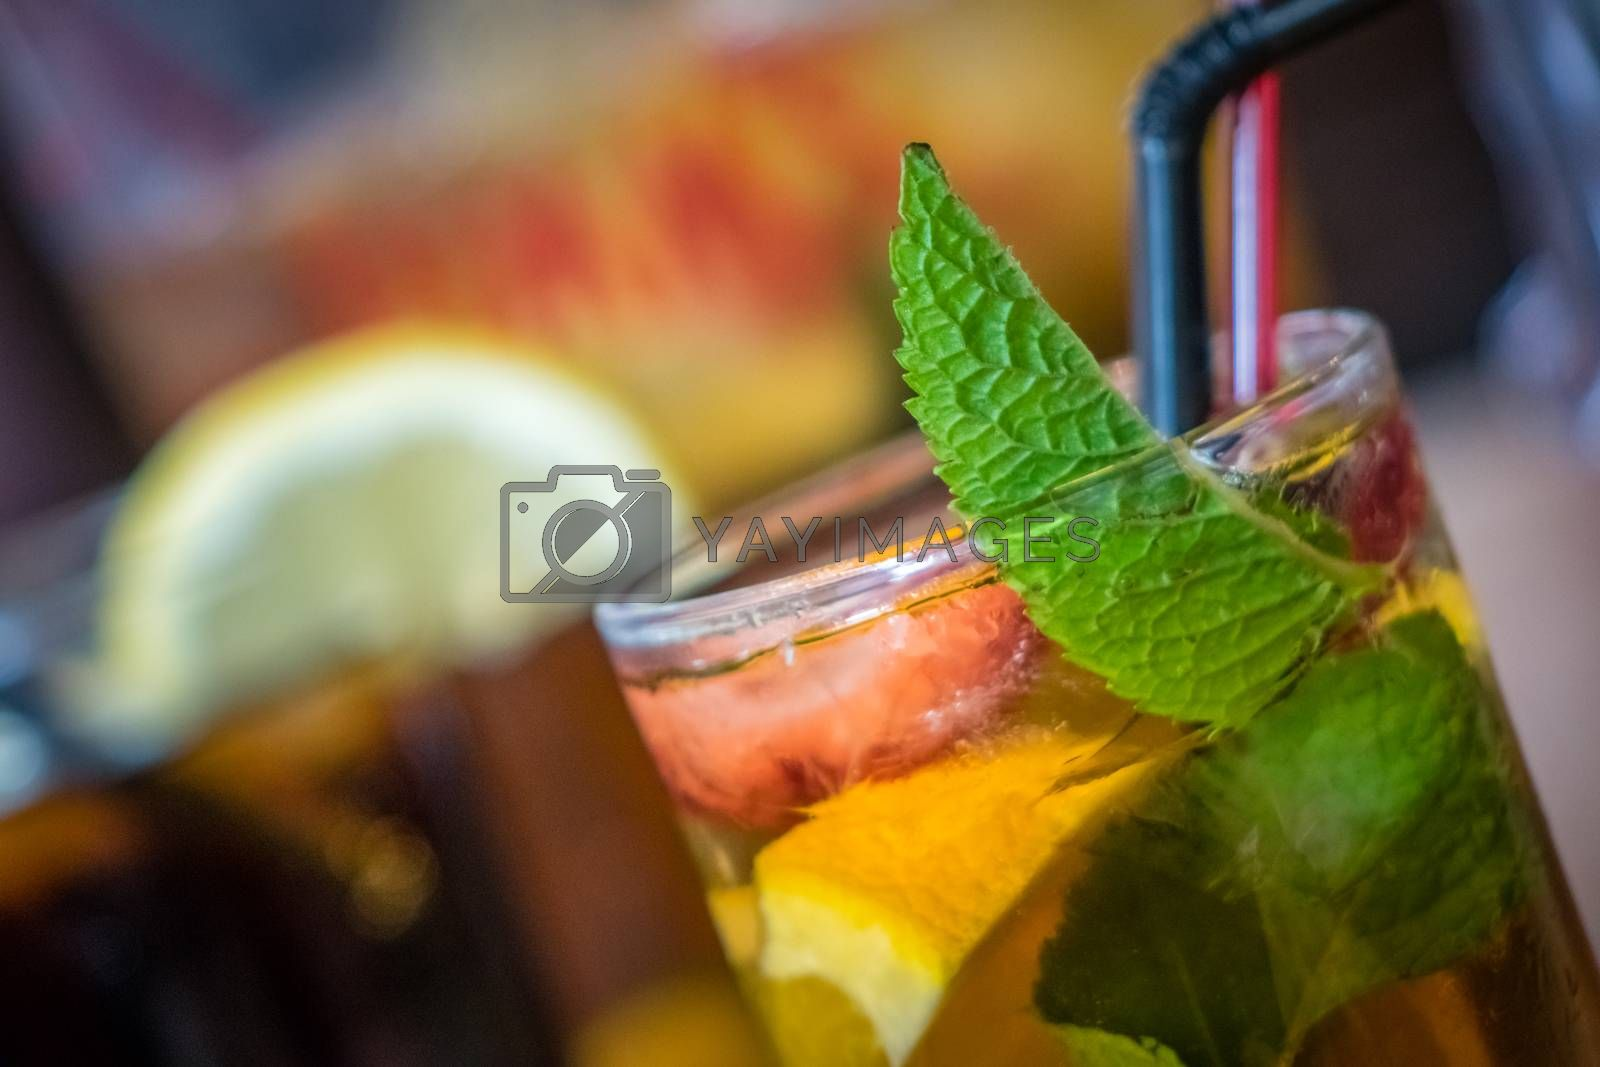 Glasses containing pimms drink and cola on a table in a pub